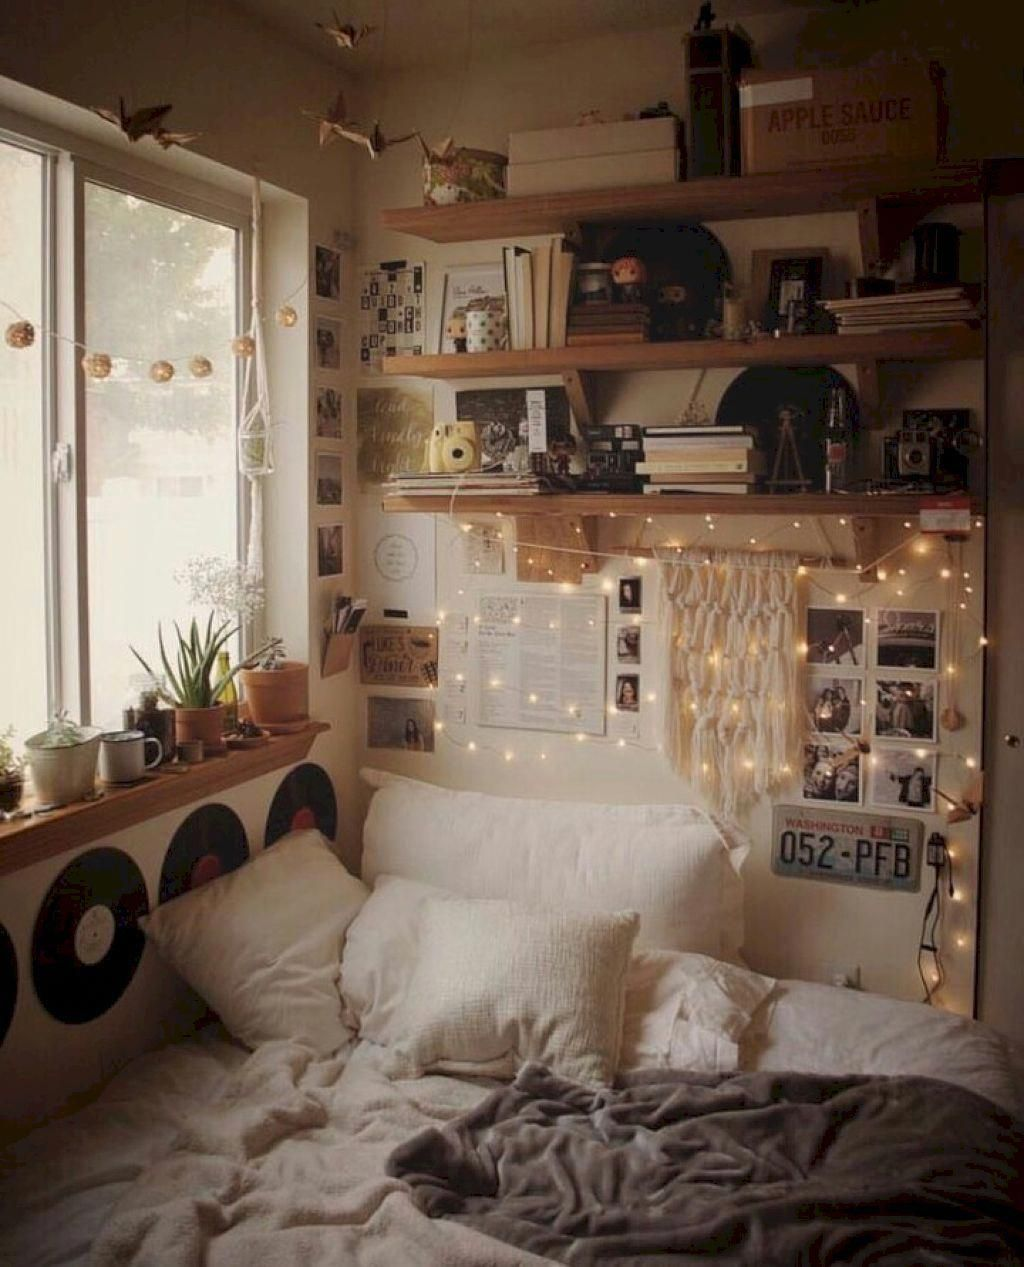 Warm Bedroom Ideas 2081531730 Super Projects For A Satisfying Cozy Bedroom Decorating Ideas Inspiration Easy Aesthetic Bedroom Room Inspo Bedroom Inspirations